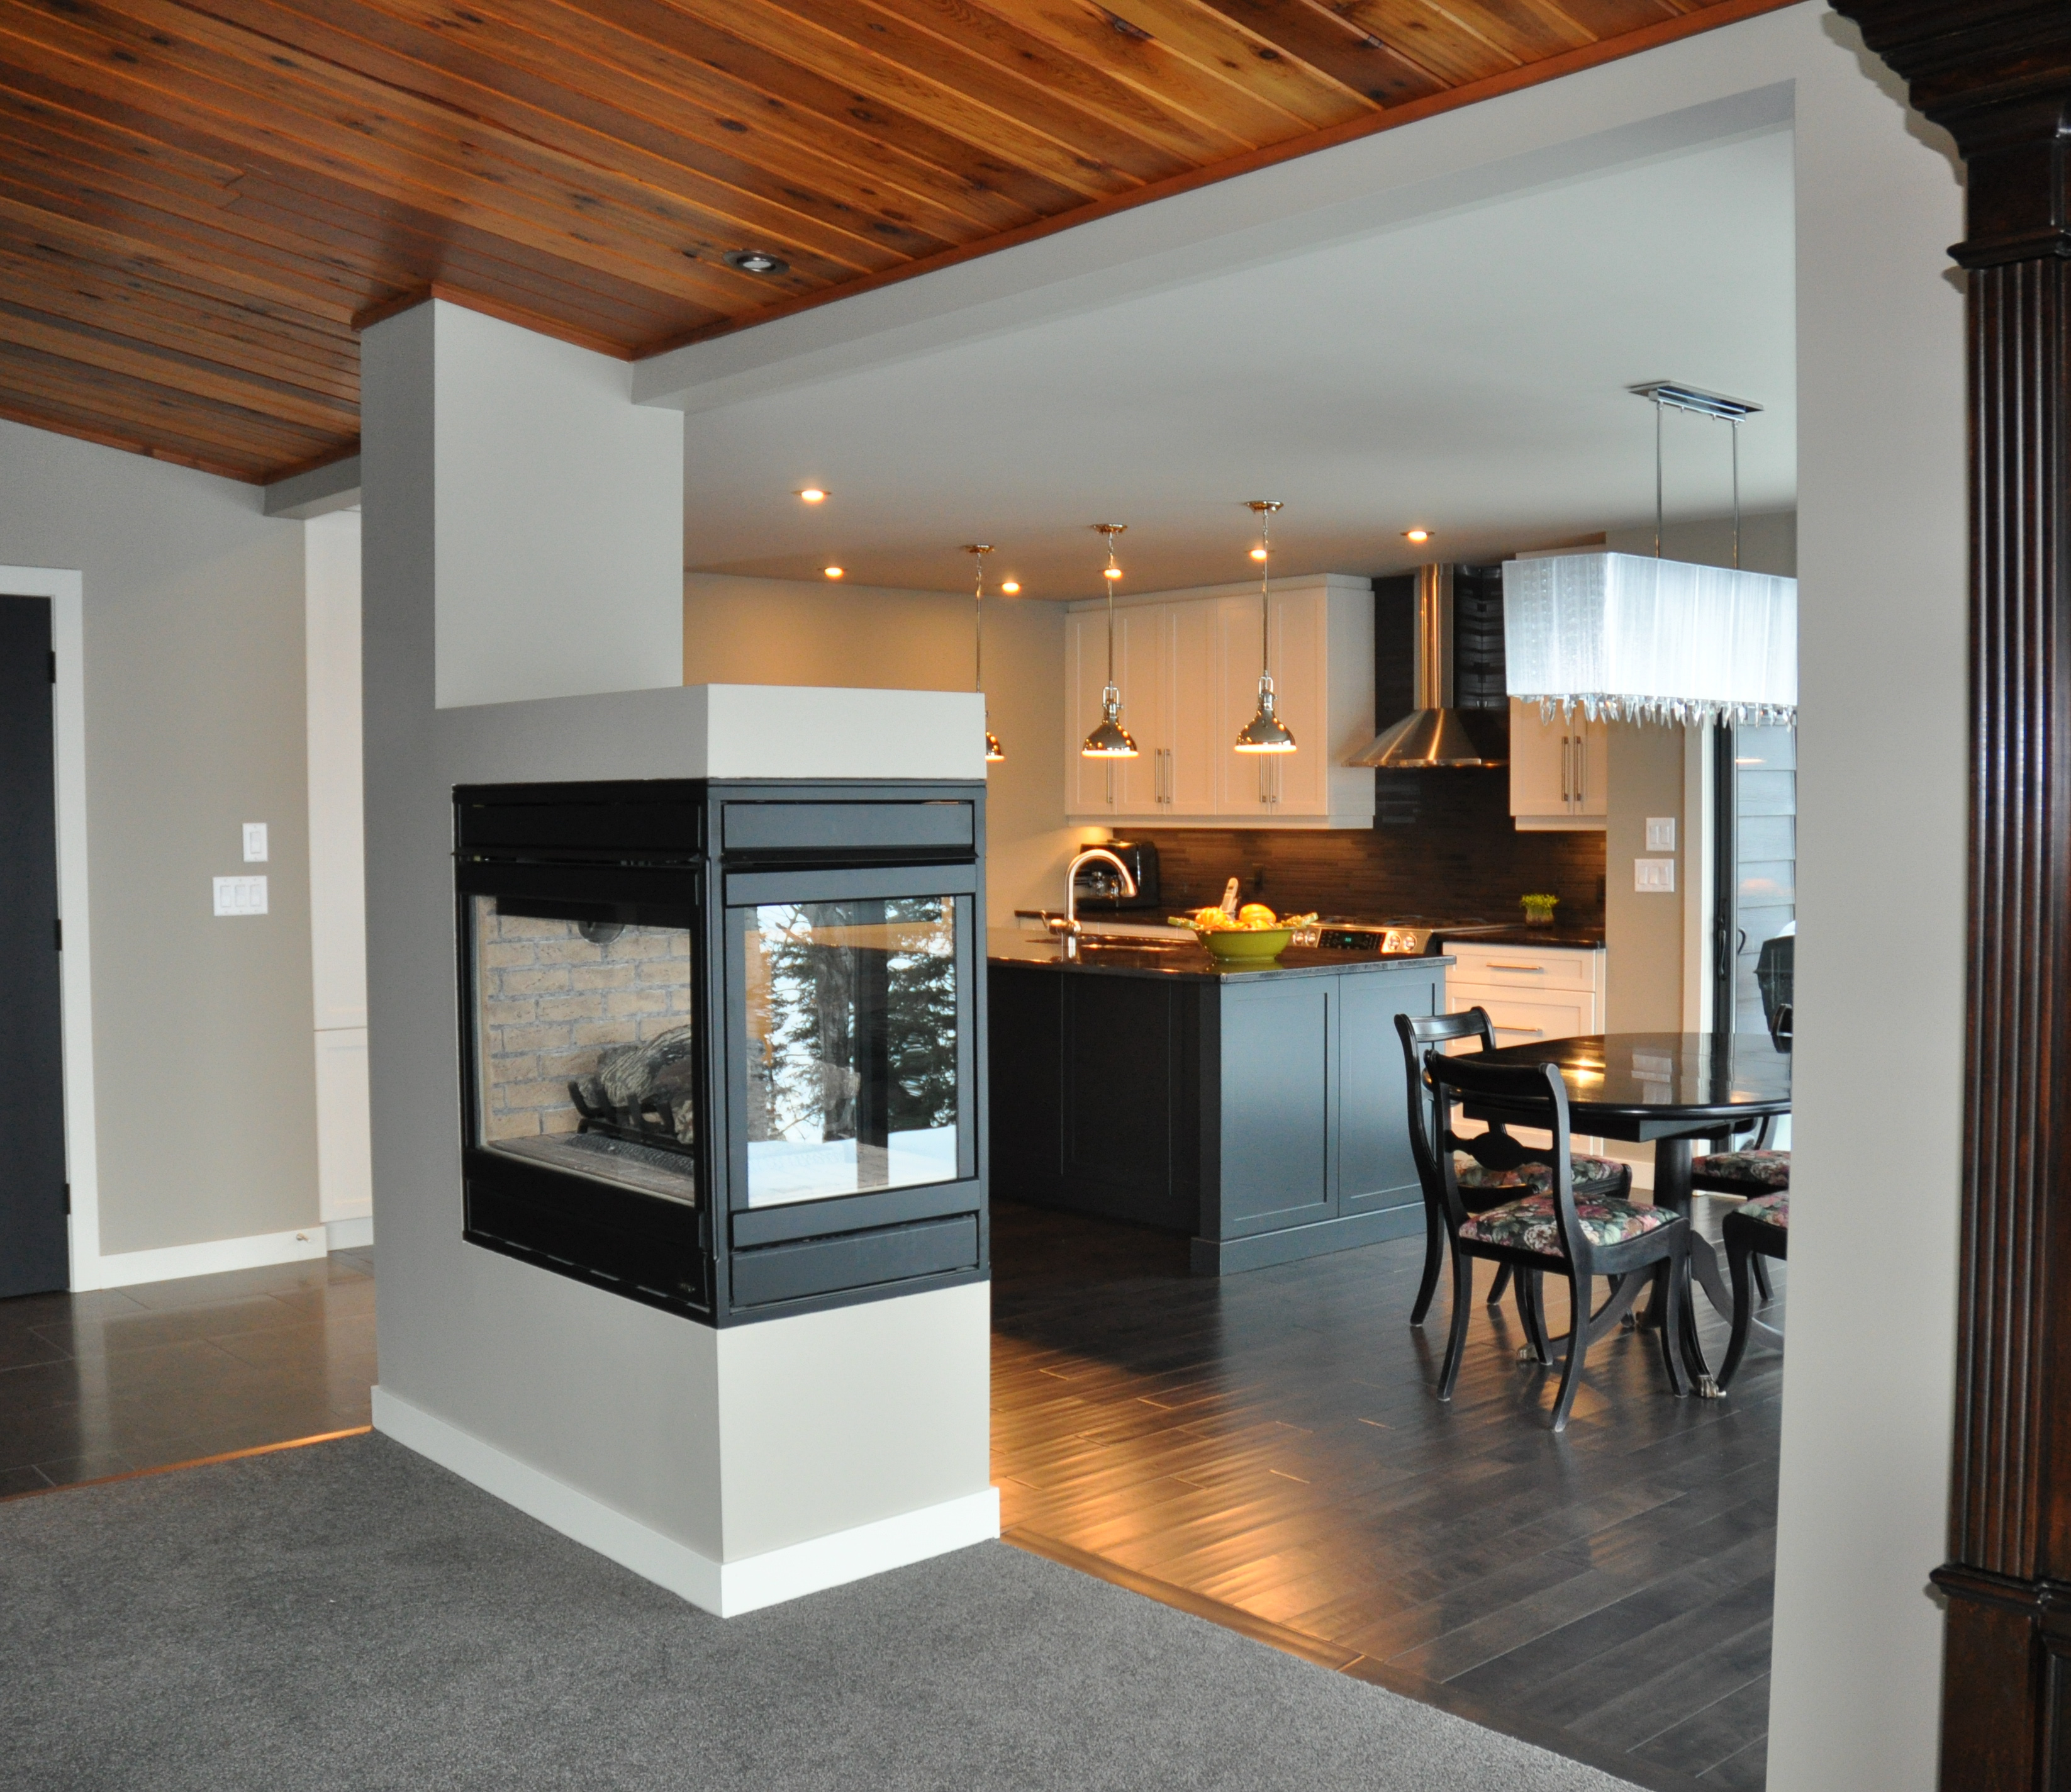 with options planning burning design fireplace new ideas lovely interior home view awesome wonderful trends wood under